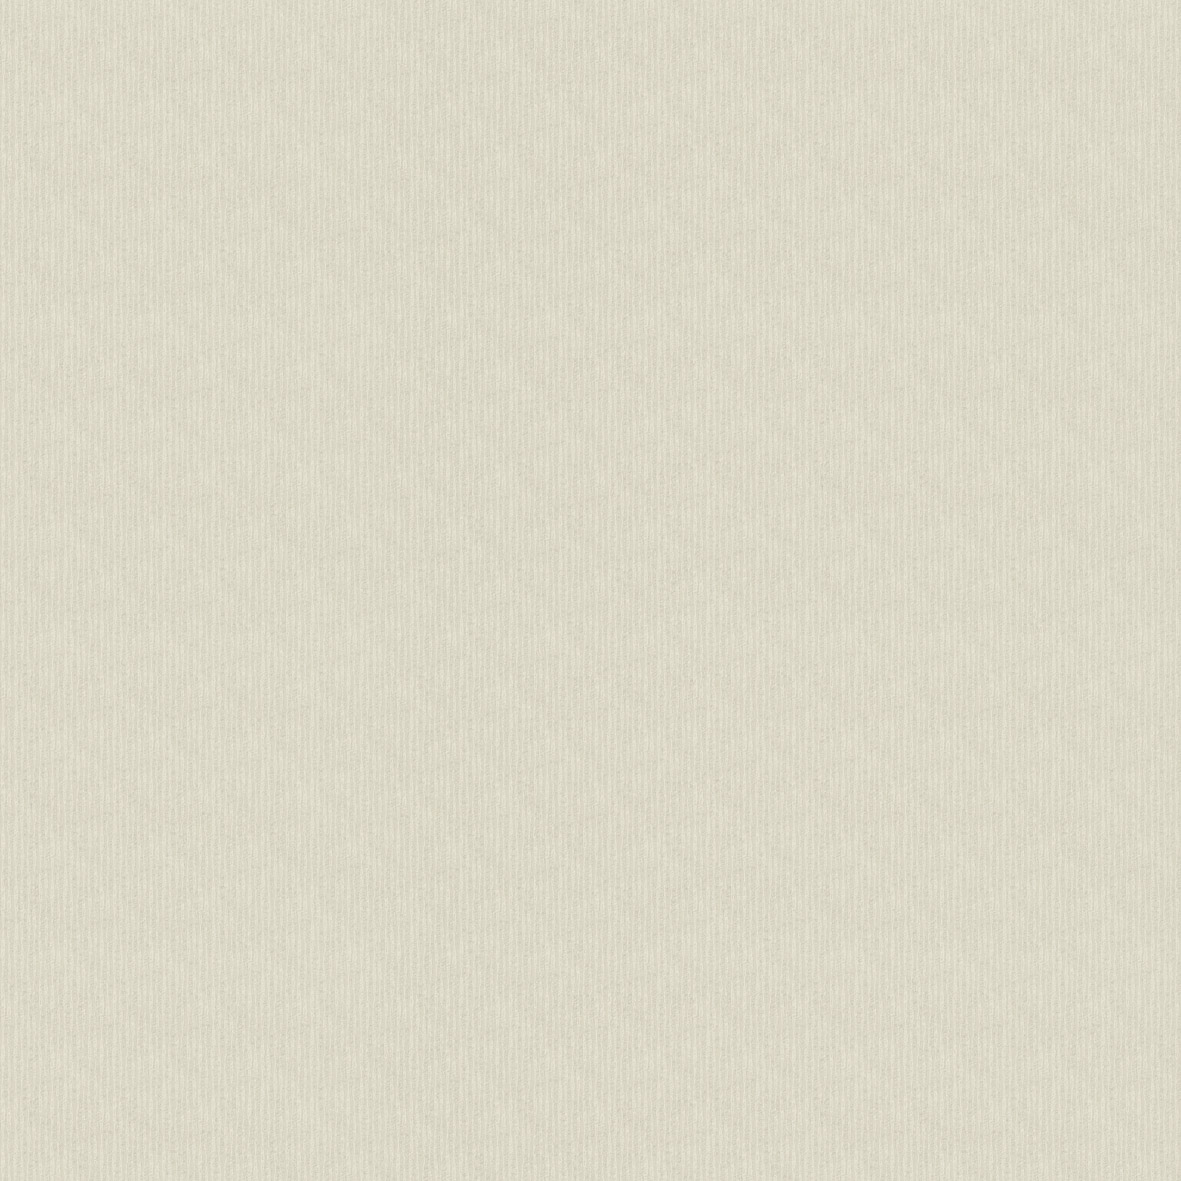 Roller_Swatch_Ribbons_asc_Cream_RE36462